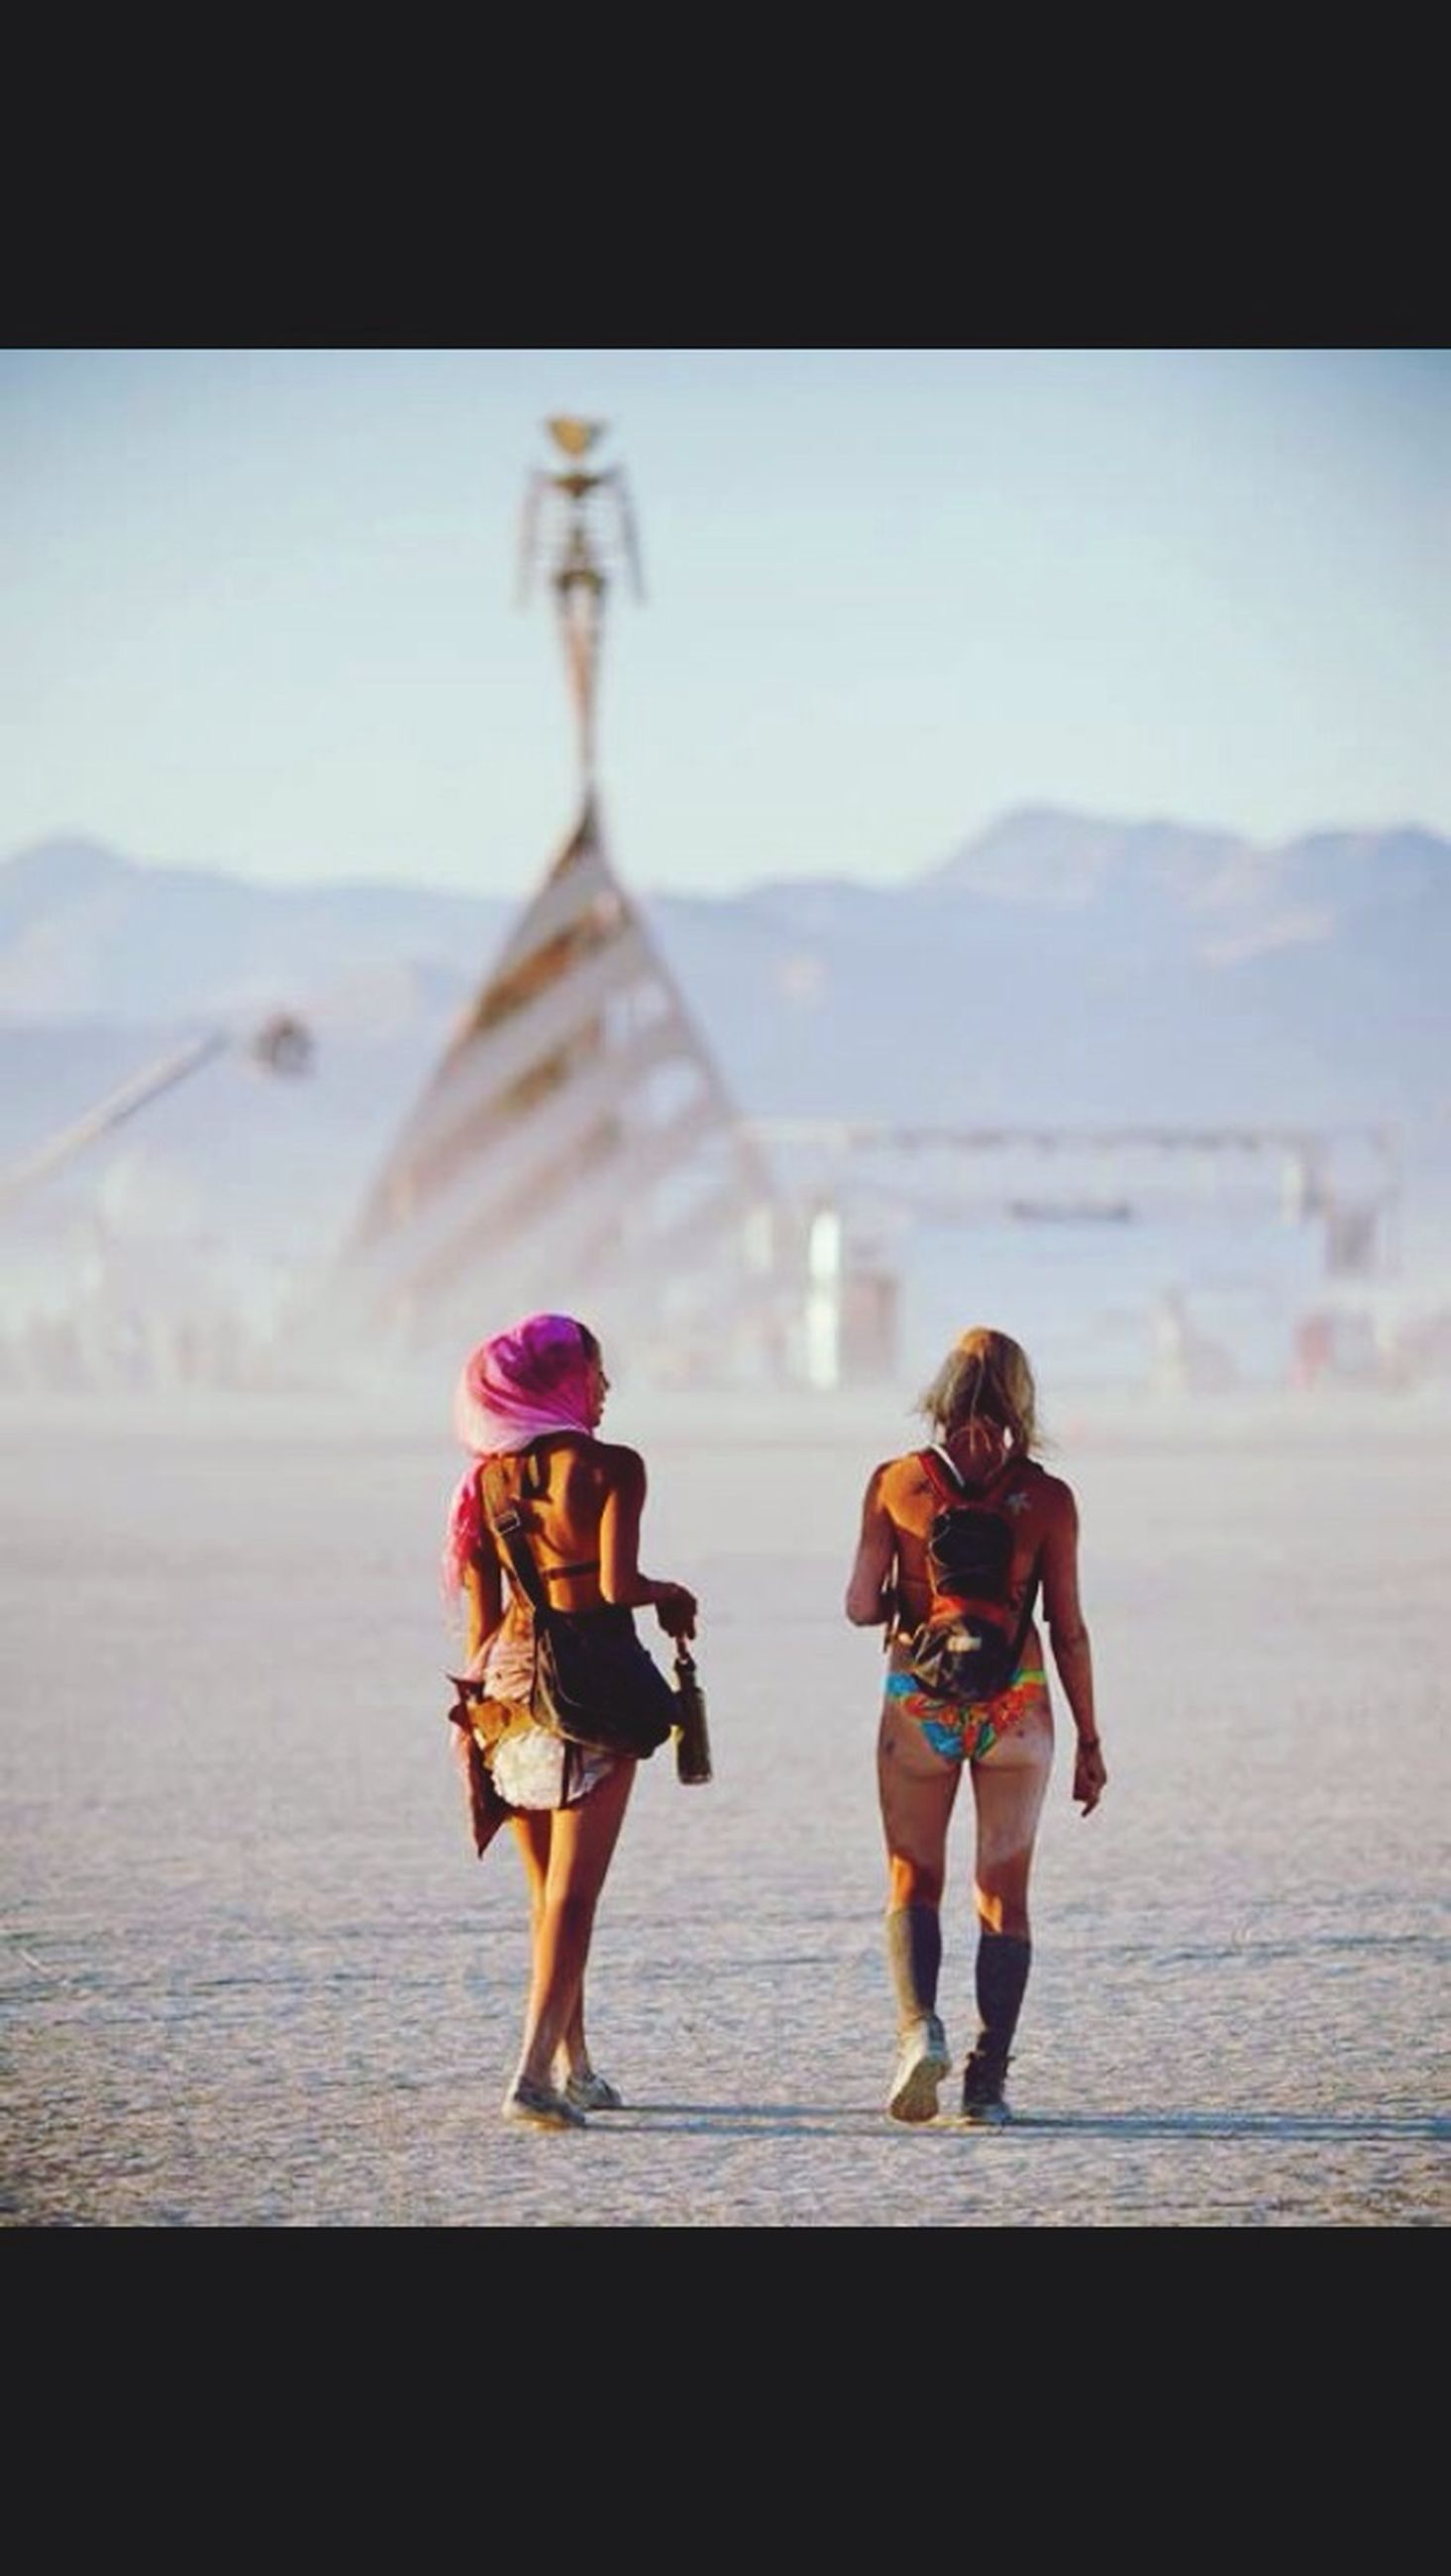 lifestyles, rear view, full length, person, leisure activity, men, transfer print, walking, auto post production filter, tourism, casual clothing, travel, tourist, large group of people, togetherness, sky, standing, travel destinations